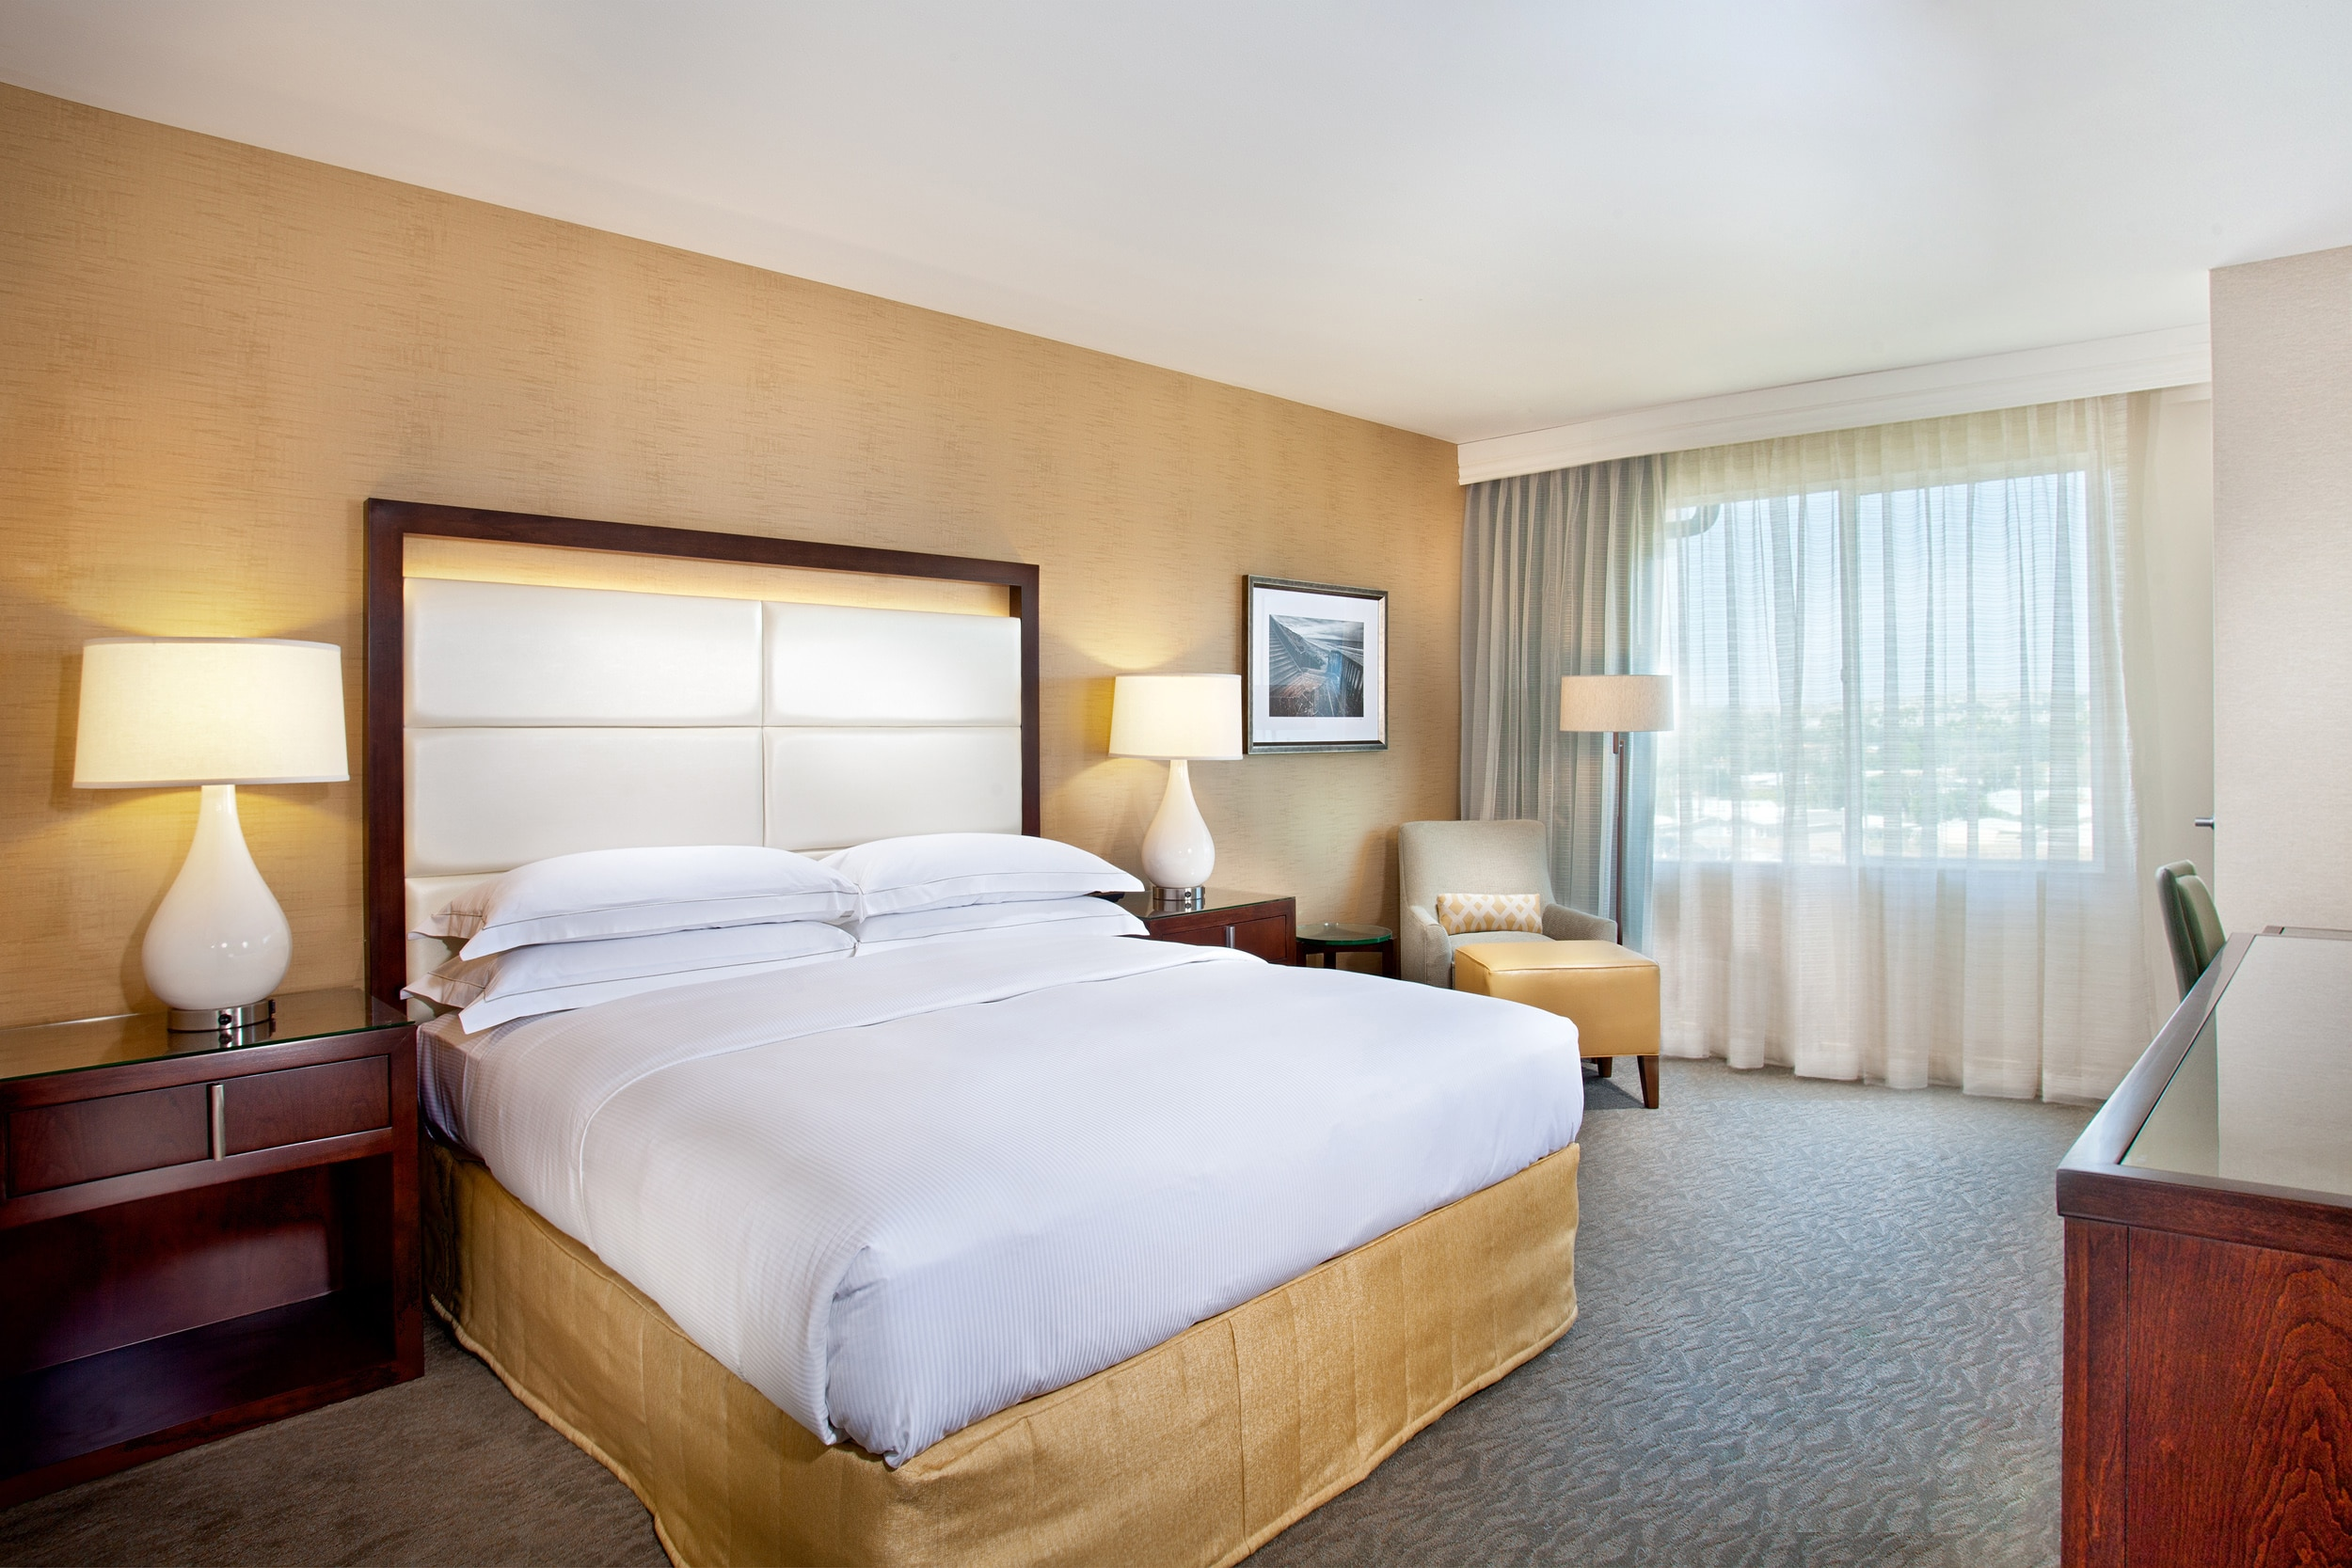 Cape Rey Carlsbad, a Hilton Resort king room